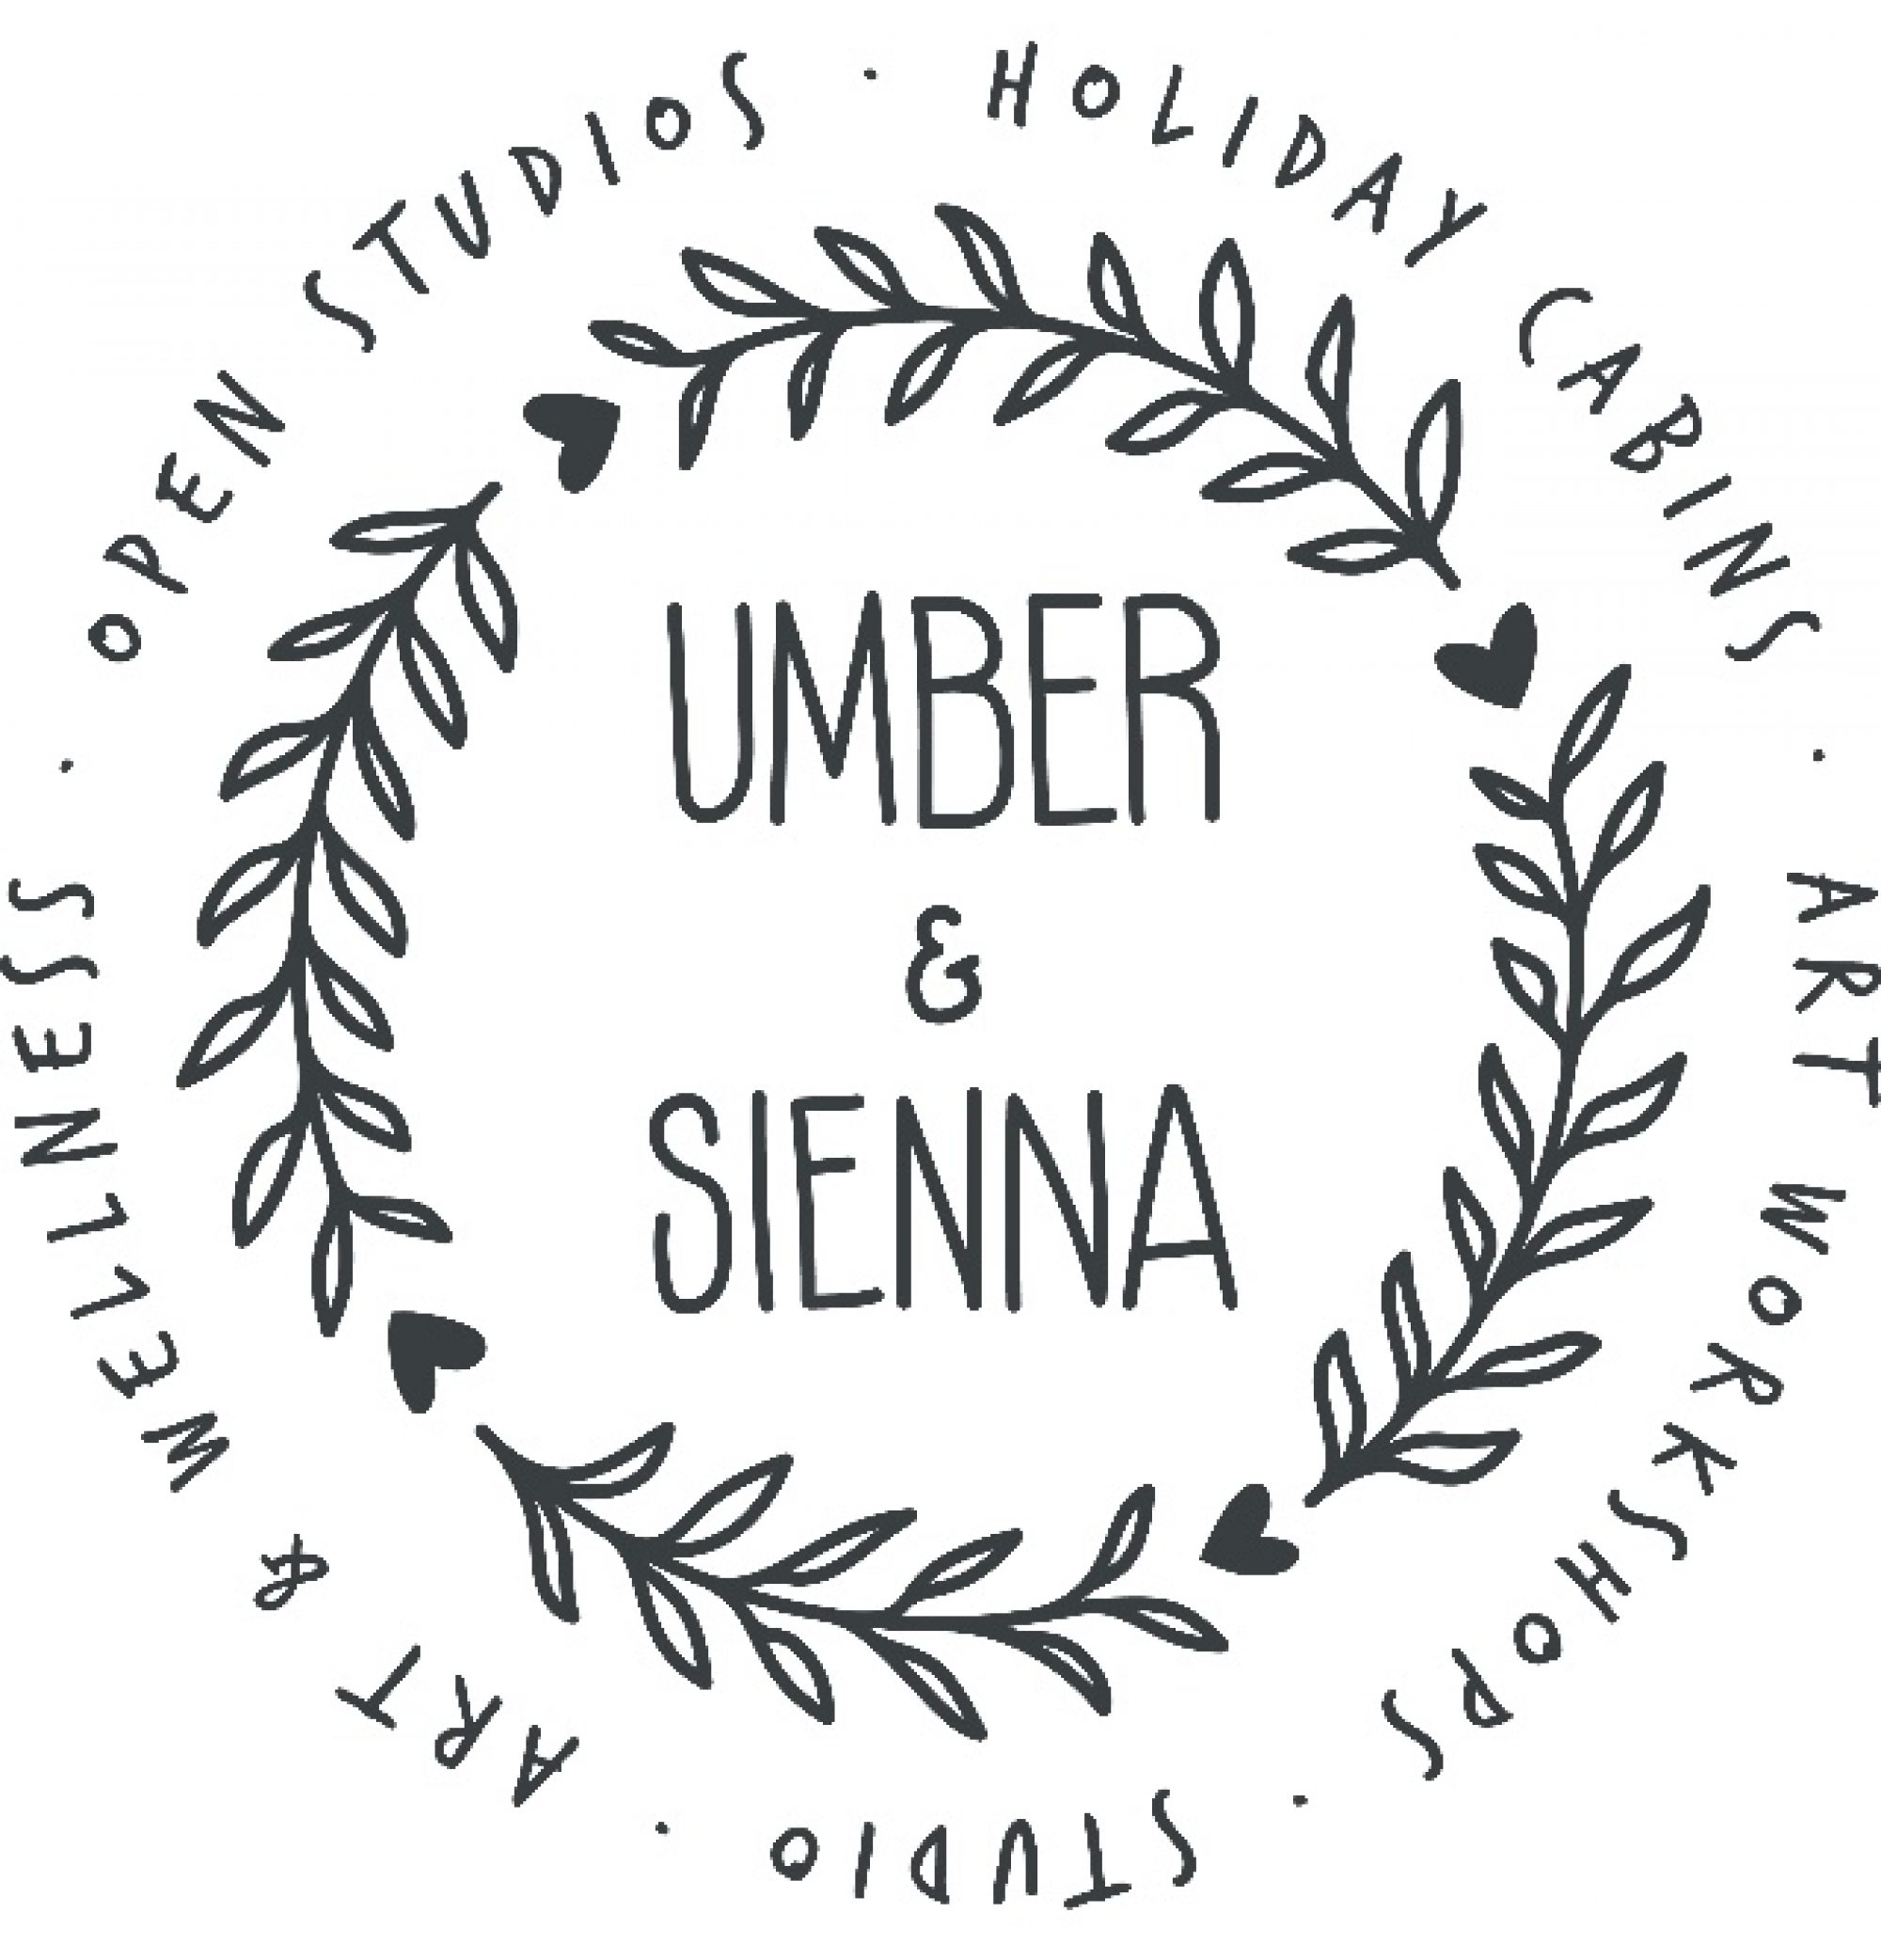 Umber and Sienna